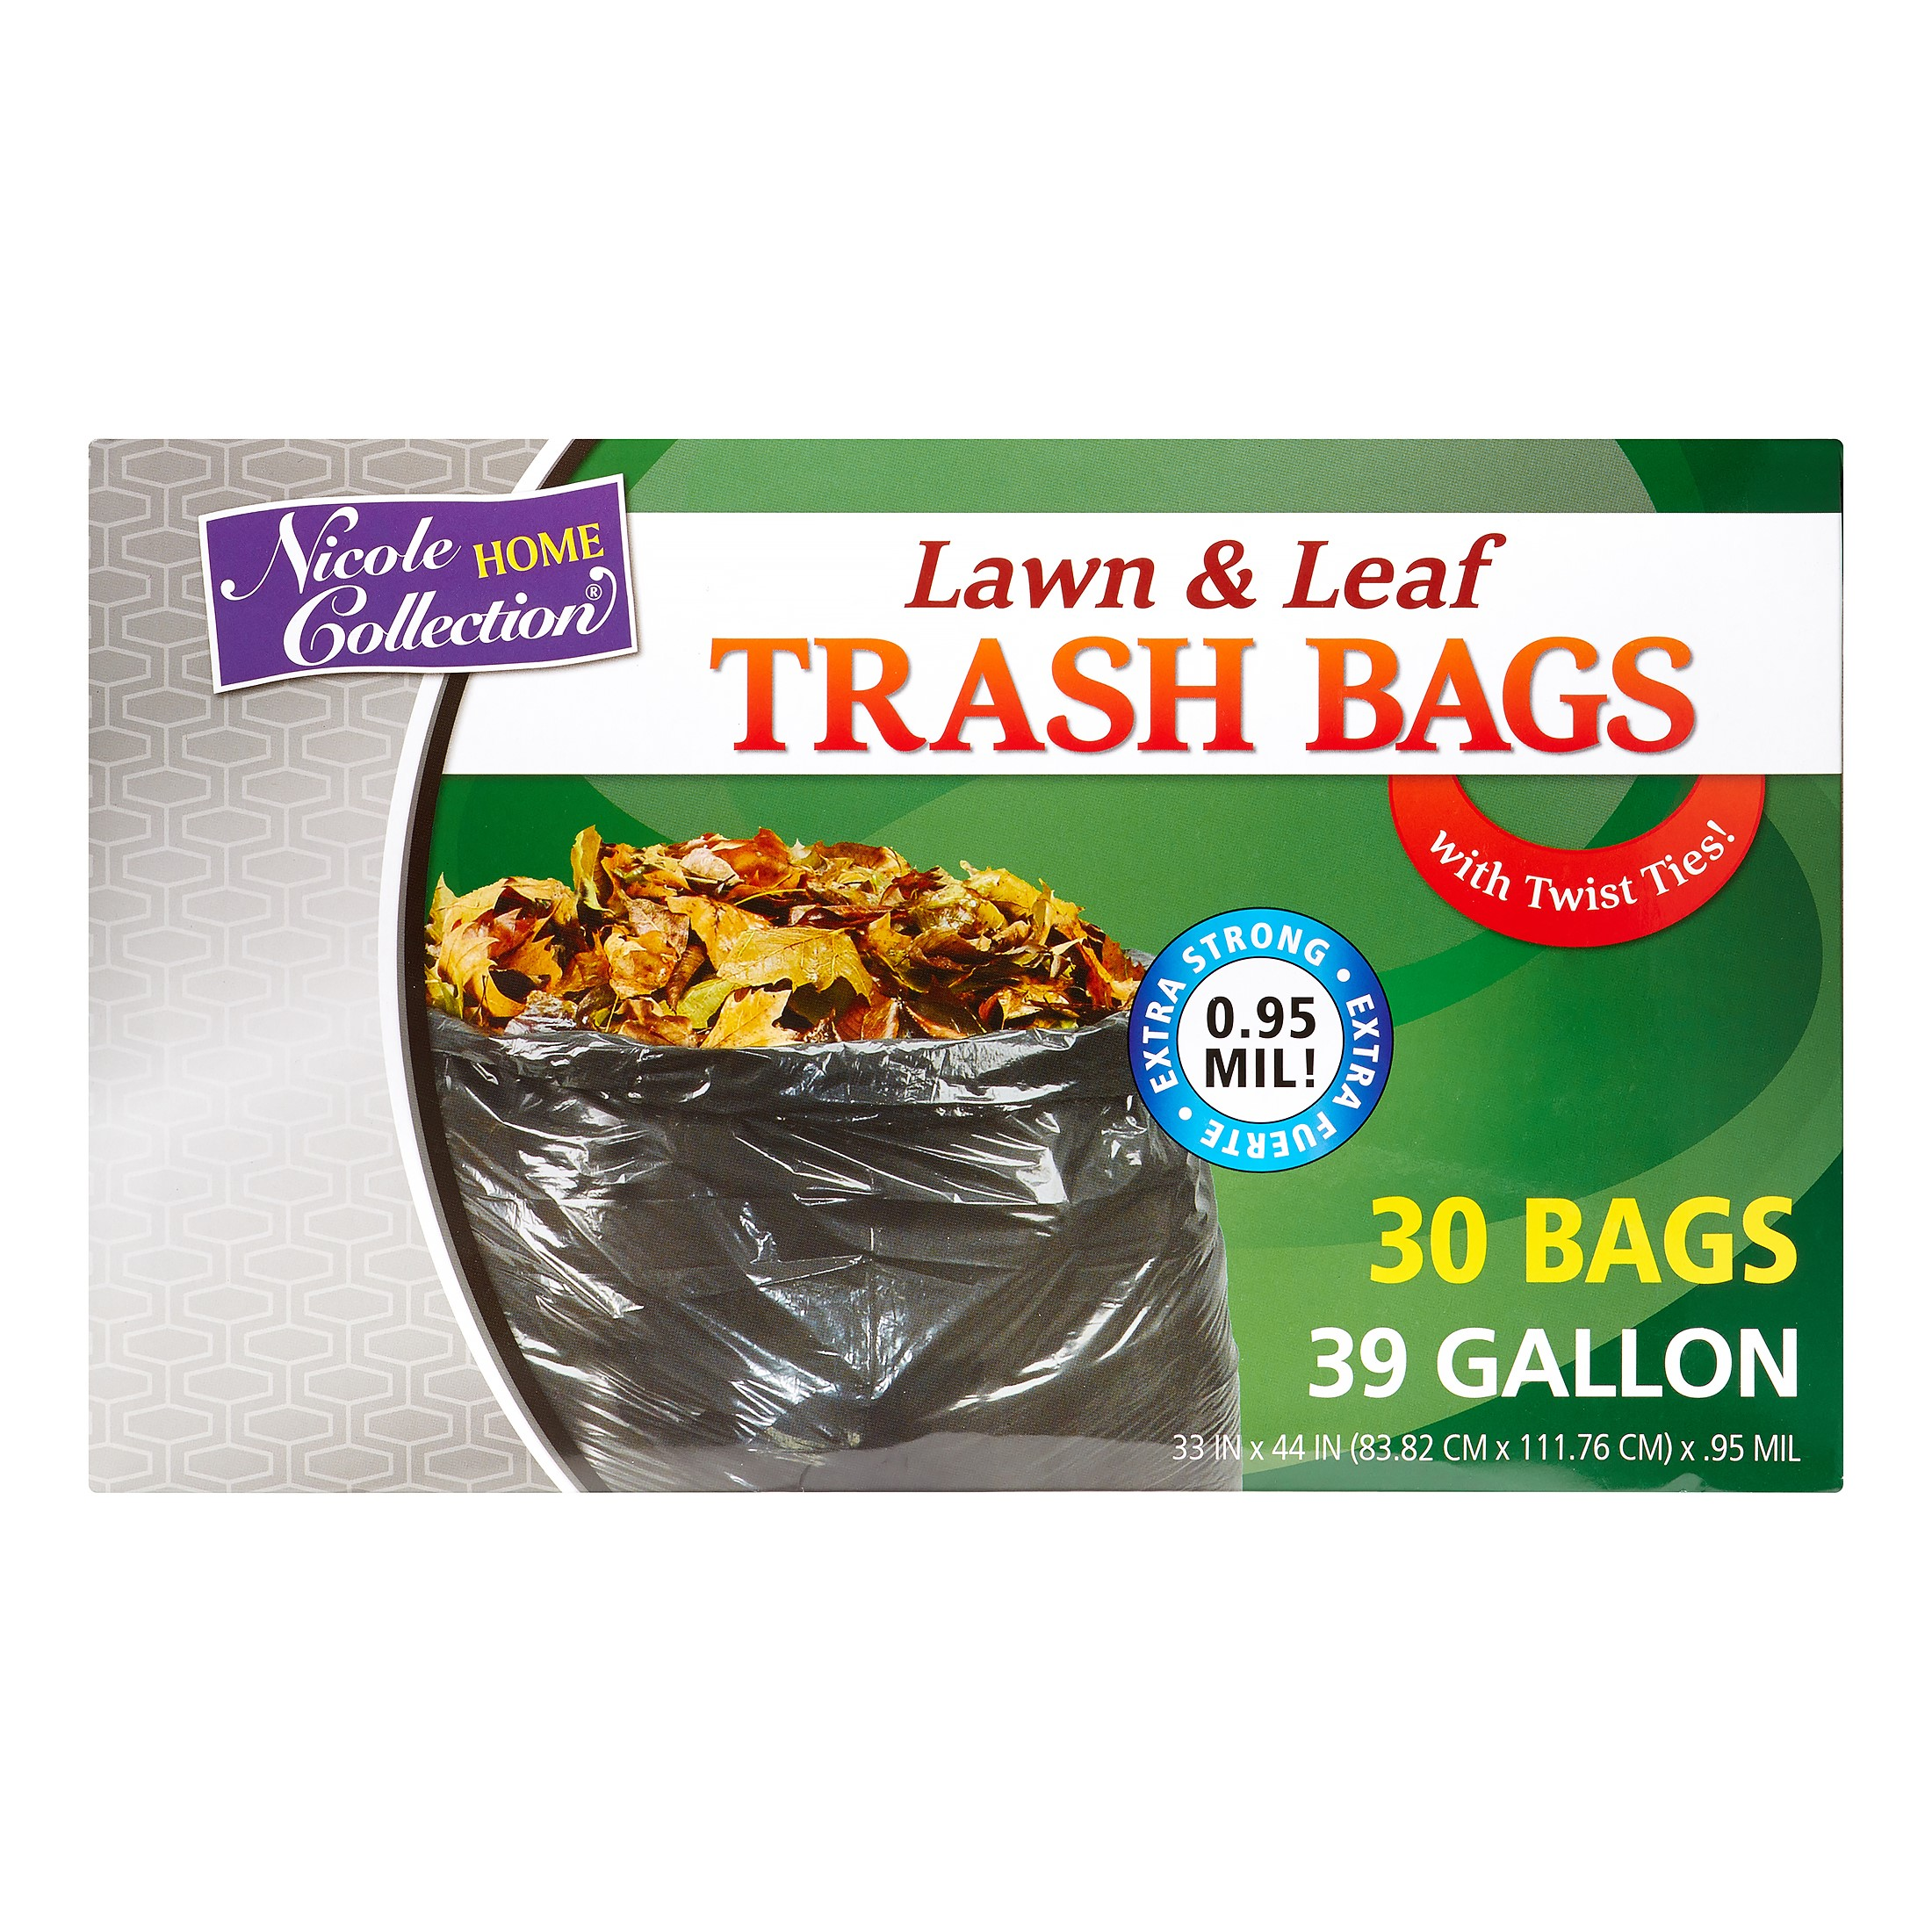 Nicole Home Collection Lawn & Leaf Trash Bags with Twist Ties, 39 Gallon, Black, 30 Ct